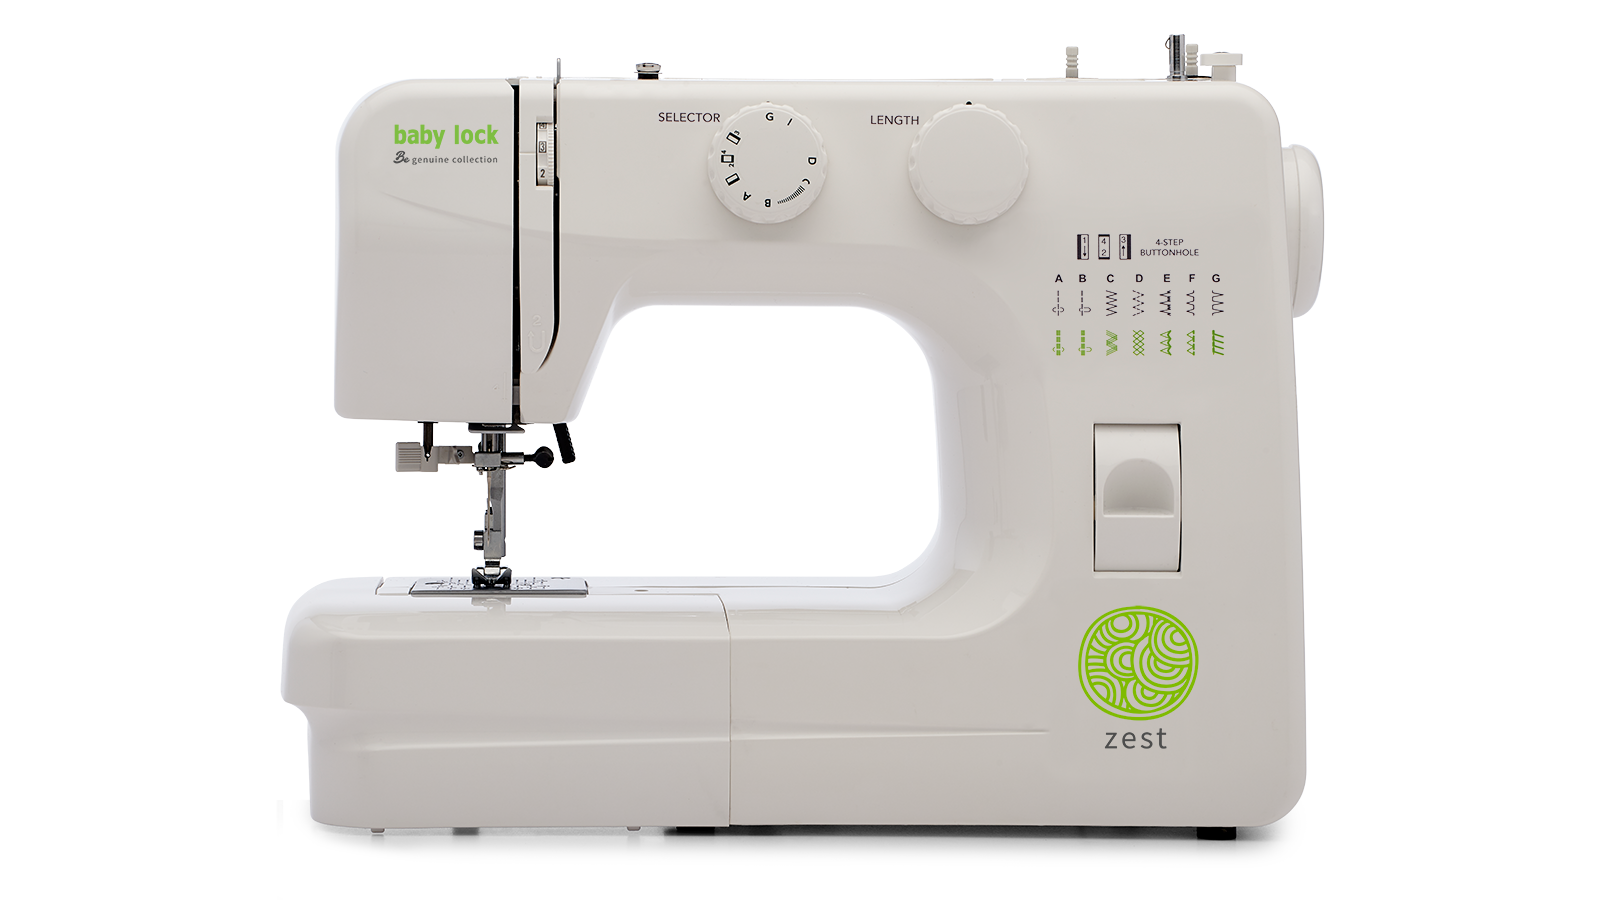 Zest - Sewing Machine